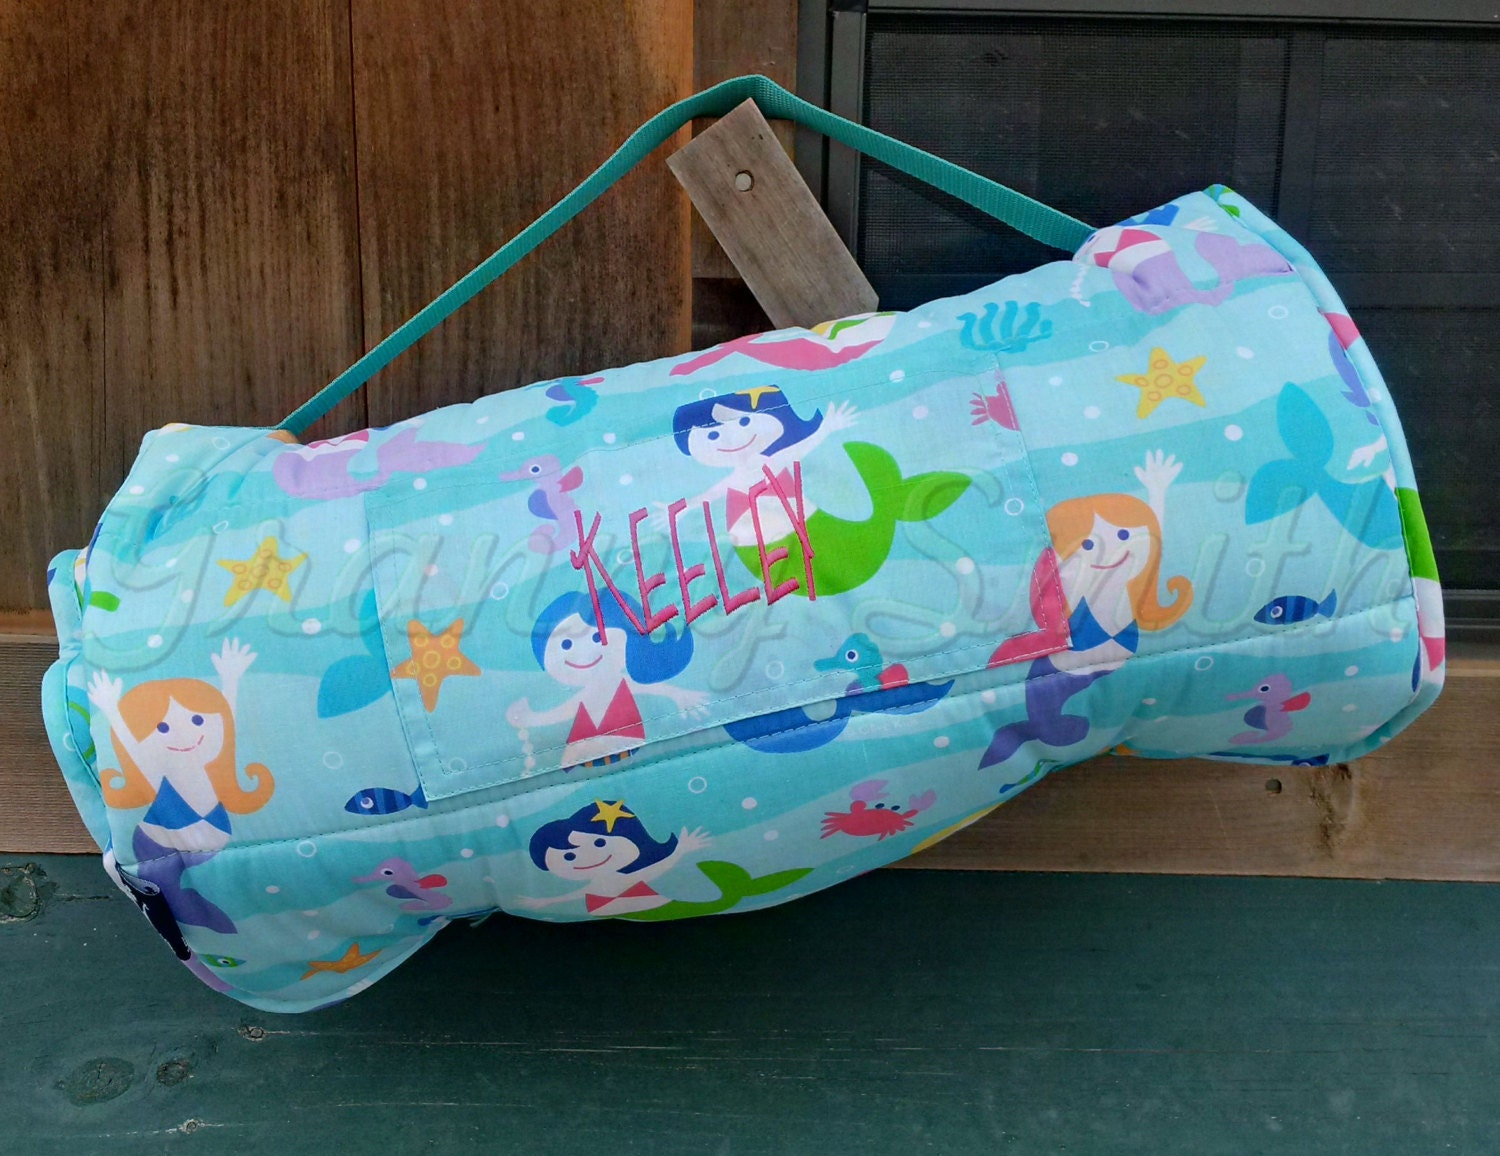 mermaid nap mat with pillow and blanket toddler nap mat. Black Bedroom Furniture Sets. Home Design Ideas